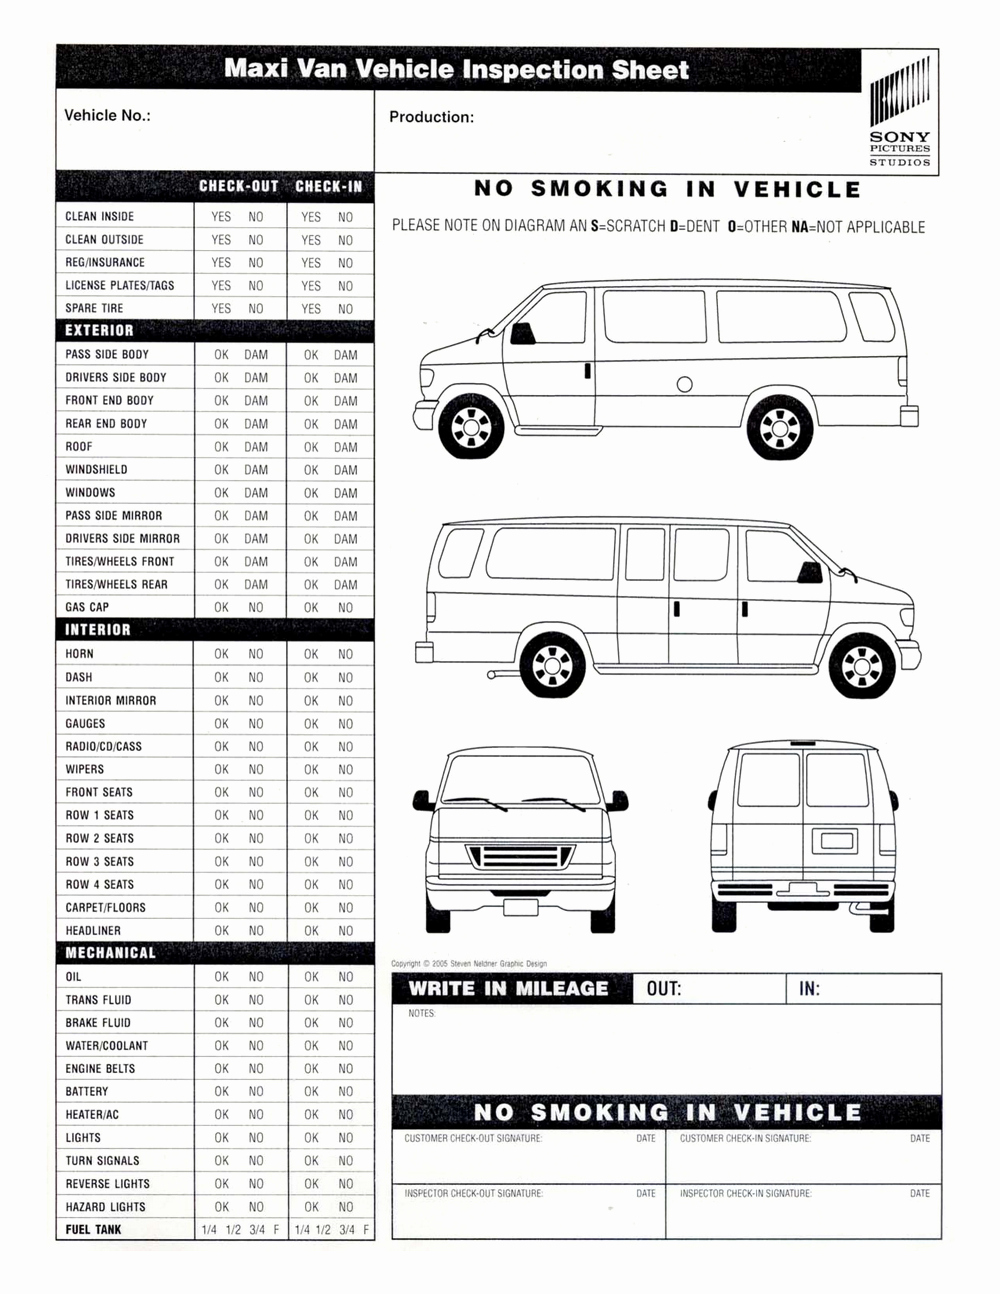 Free Vehicle Inspection Sheet Template New Annual Vehicle Inspection form Free